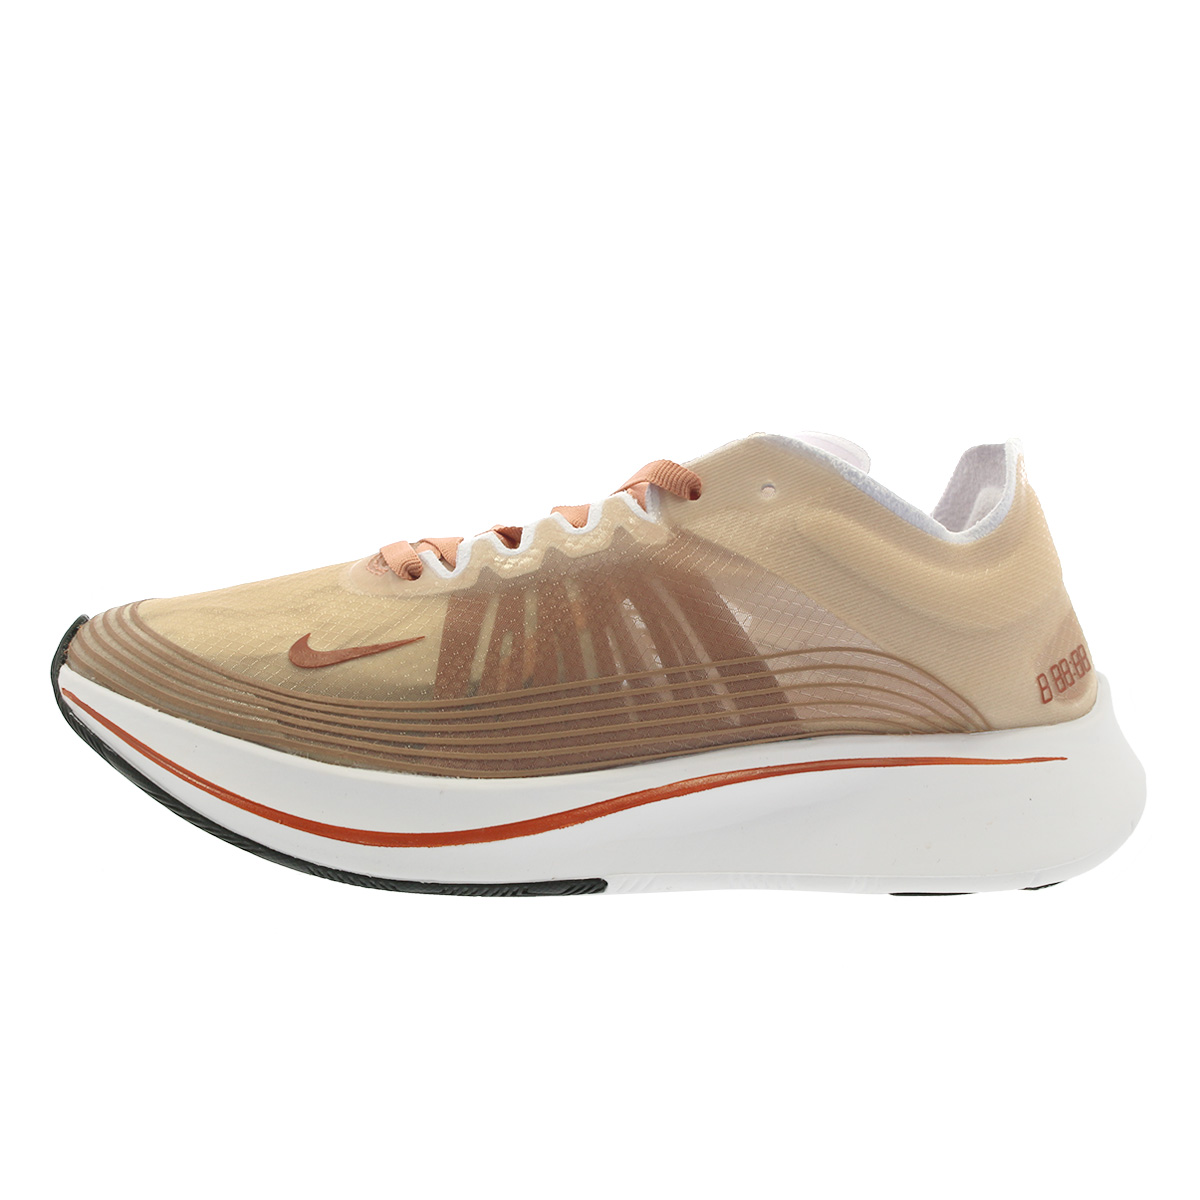 120a583f5abf NIKE WMNS ZOOM FLY SP Nike women zoom fly SP DUSTY PEACH GUAVA ICE DUSTY  PEACH aj8229-200